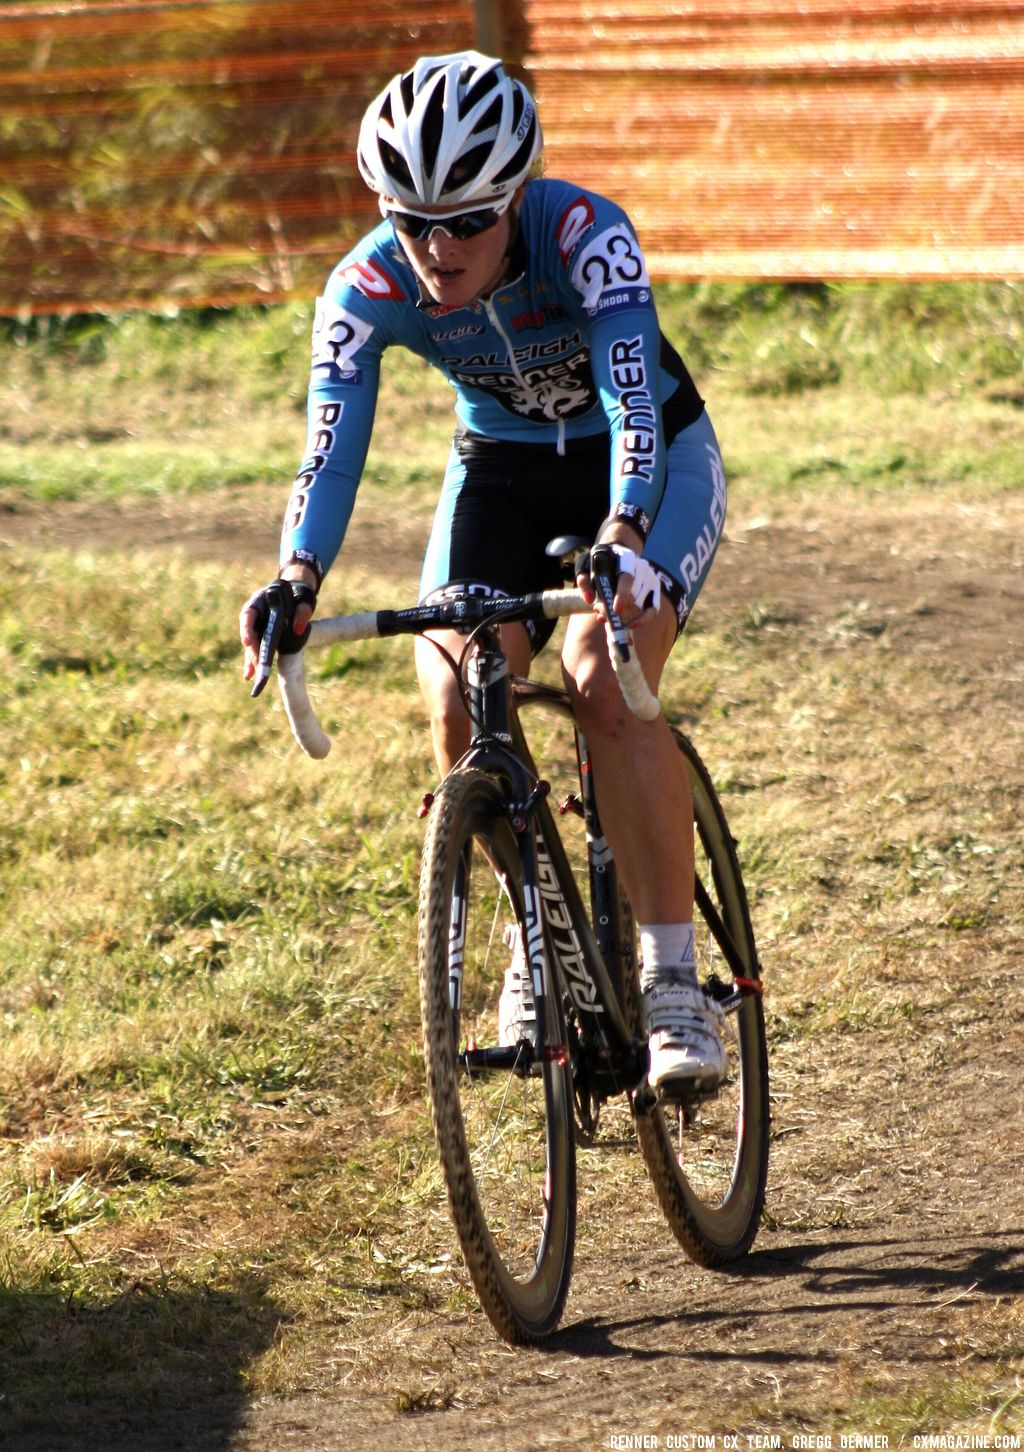 Gabby Day in the turn. © Renner Custom CX Team, Gregg Germer